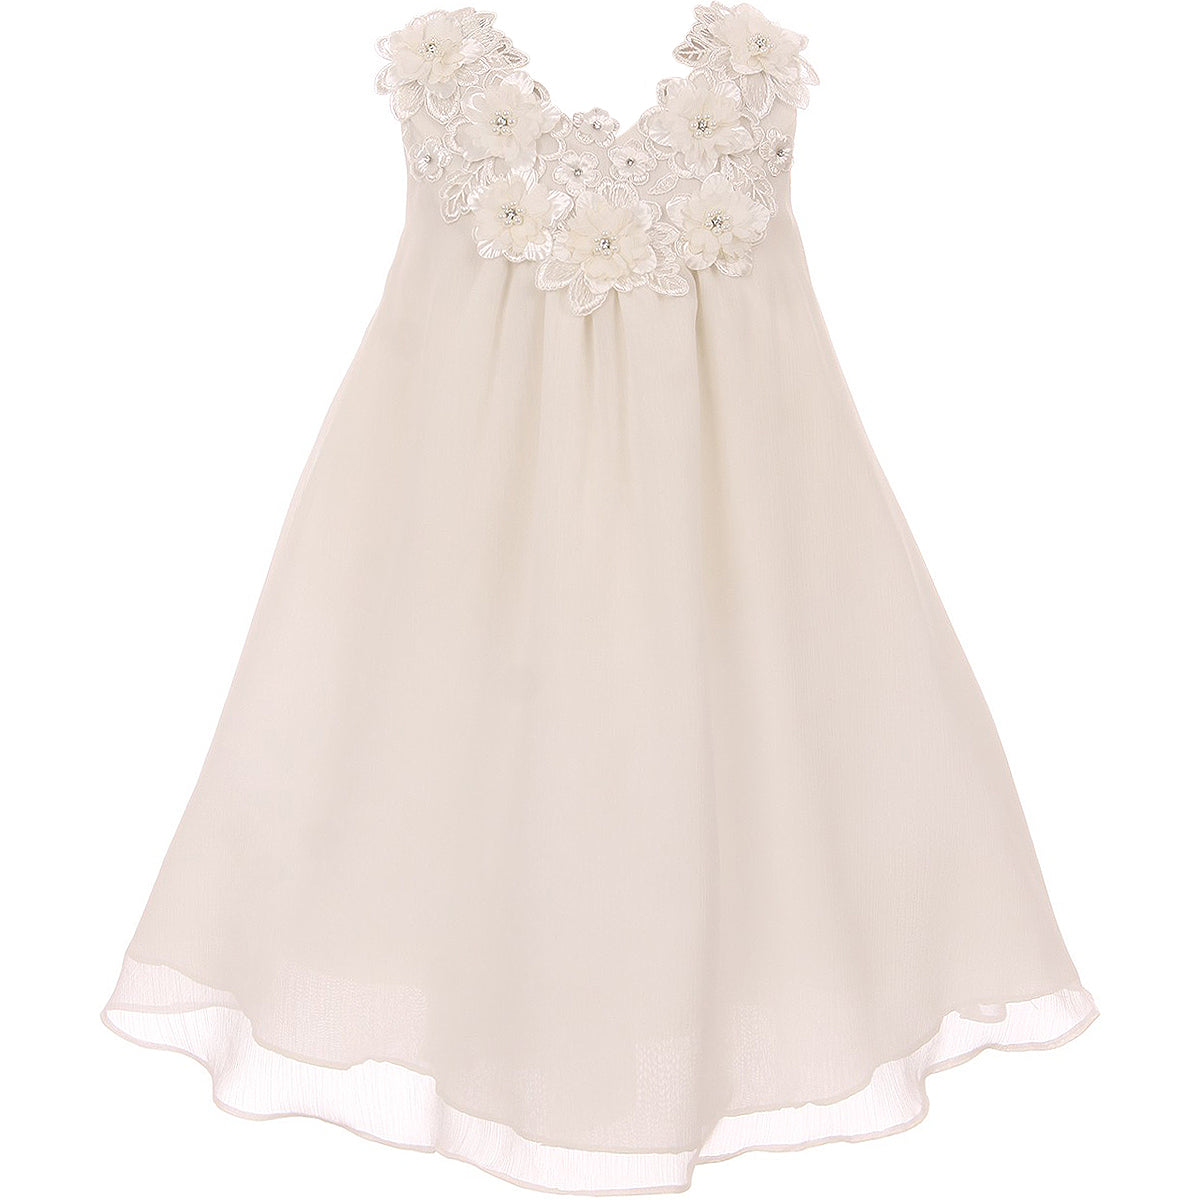 A-LINE CHIFFON WITH FLOWER AND SIMULATED PEARLS